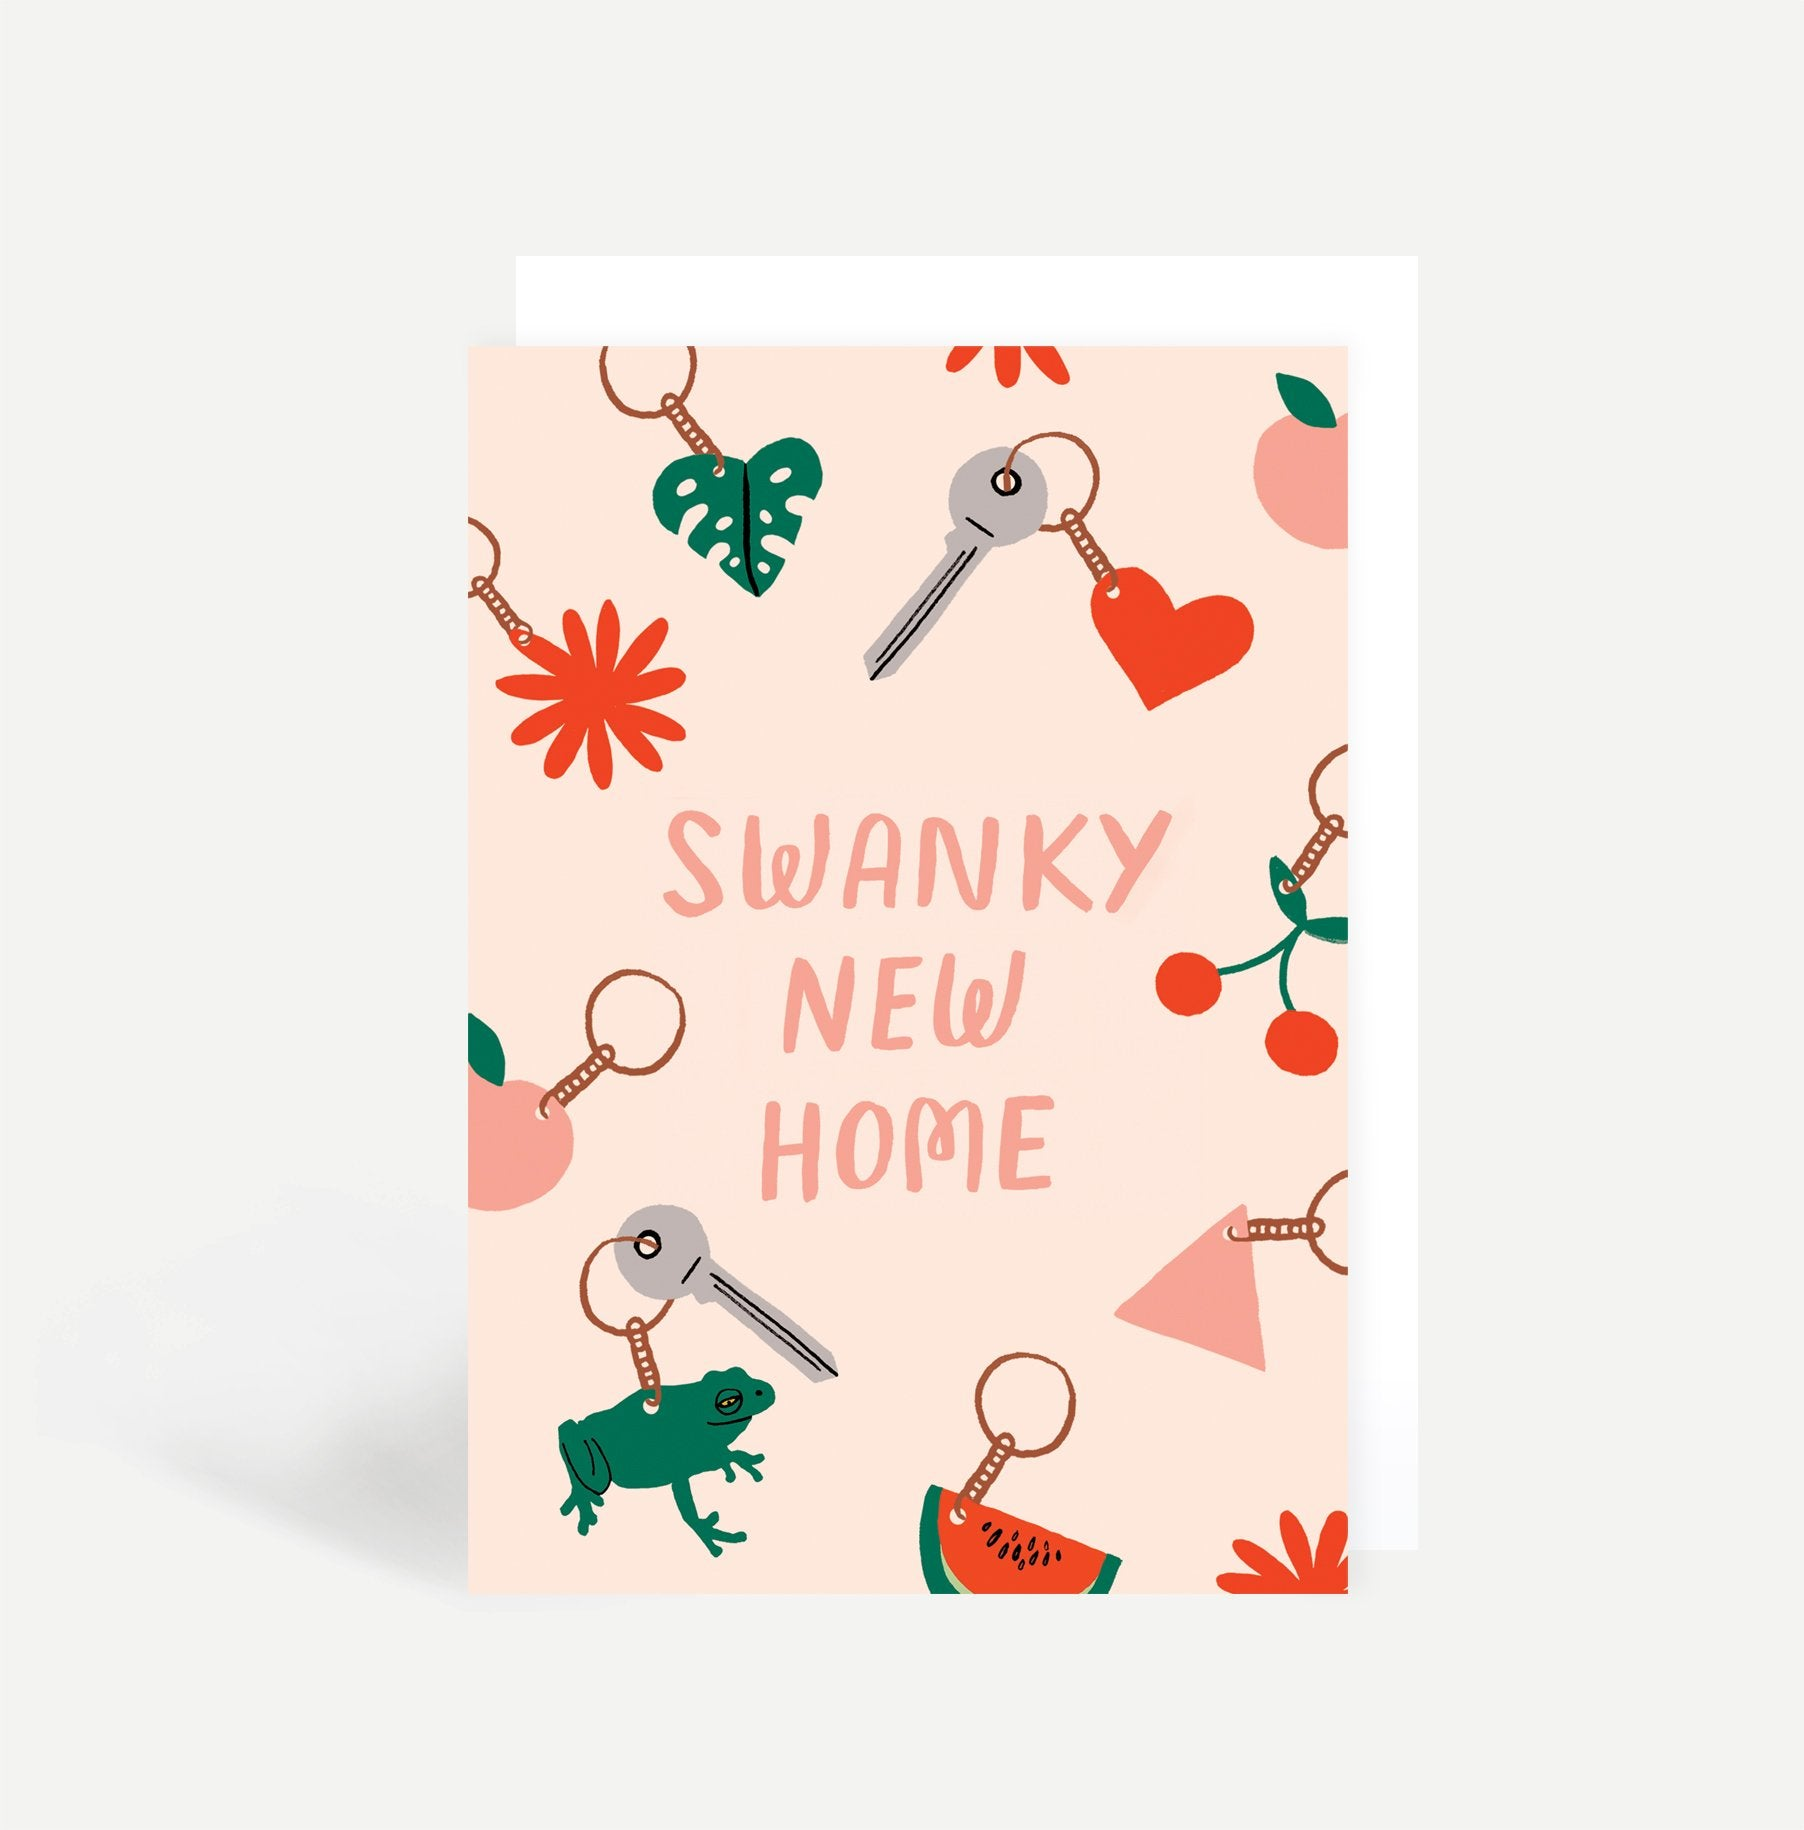 Swanky New Home Greetings Card